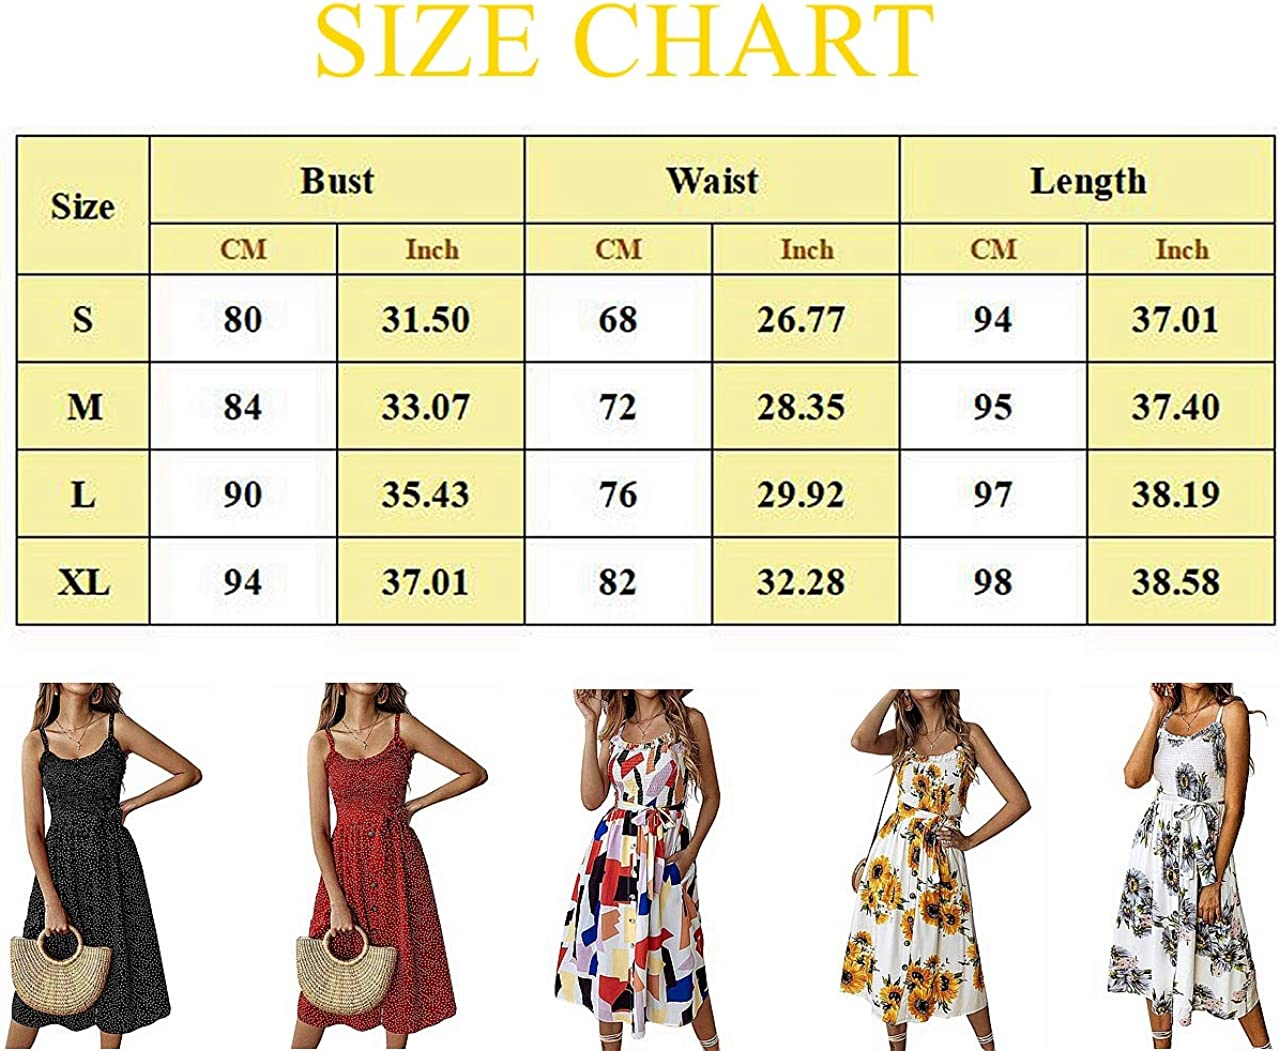 INIBUD Summer Midi Dresses for Women Button Down Long Beach Sun Dress Floral Print Swing A-Line 2 Side Pockets with Belt